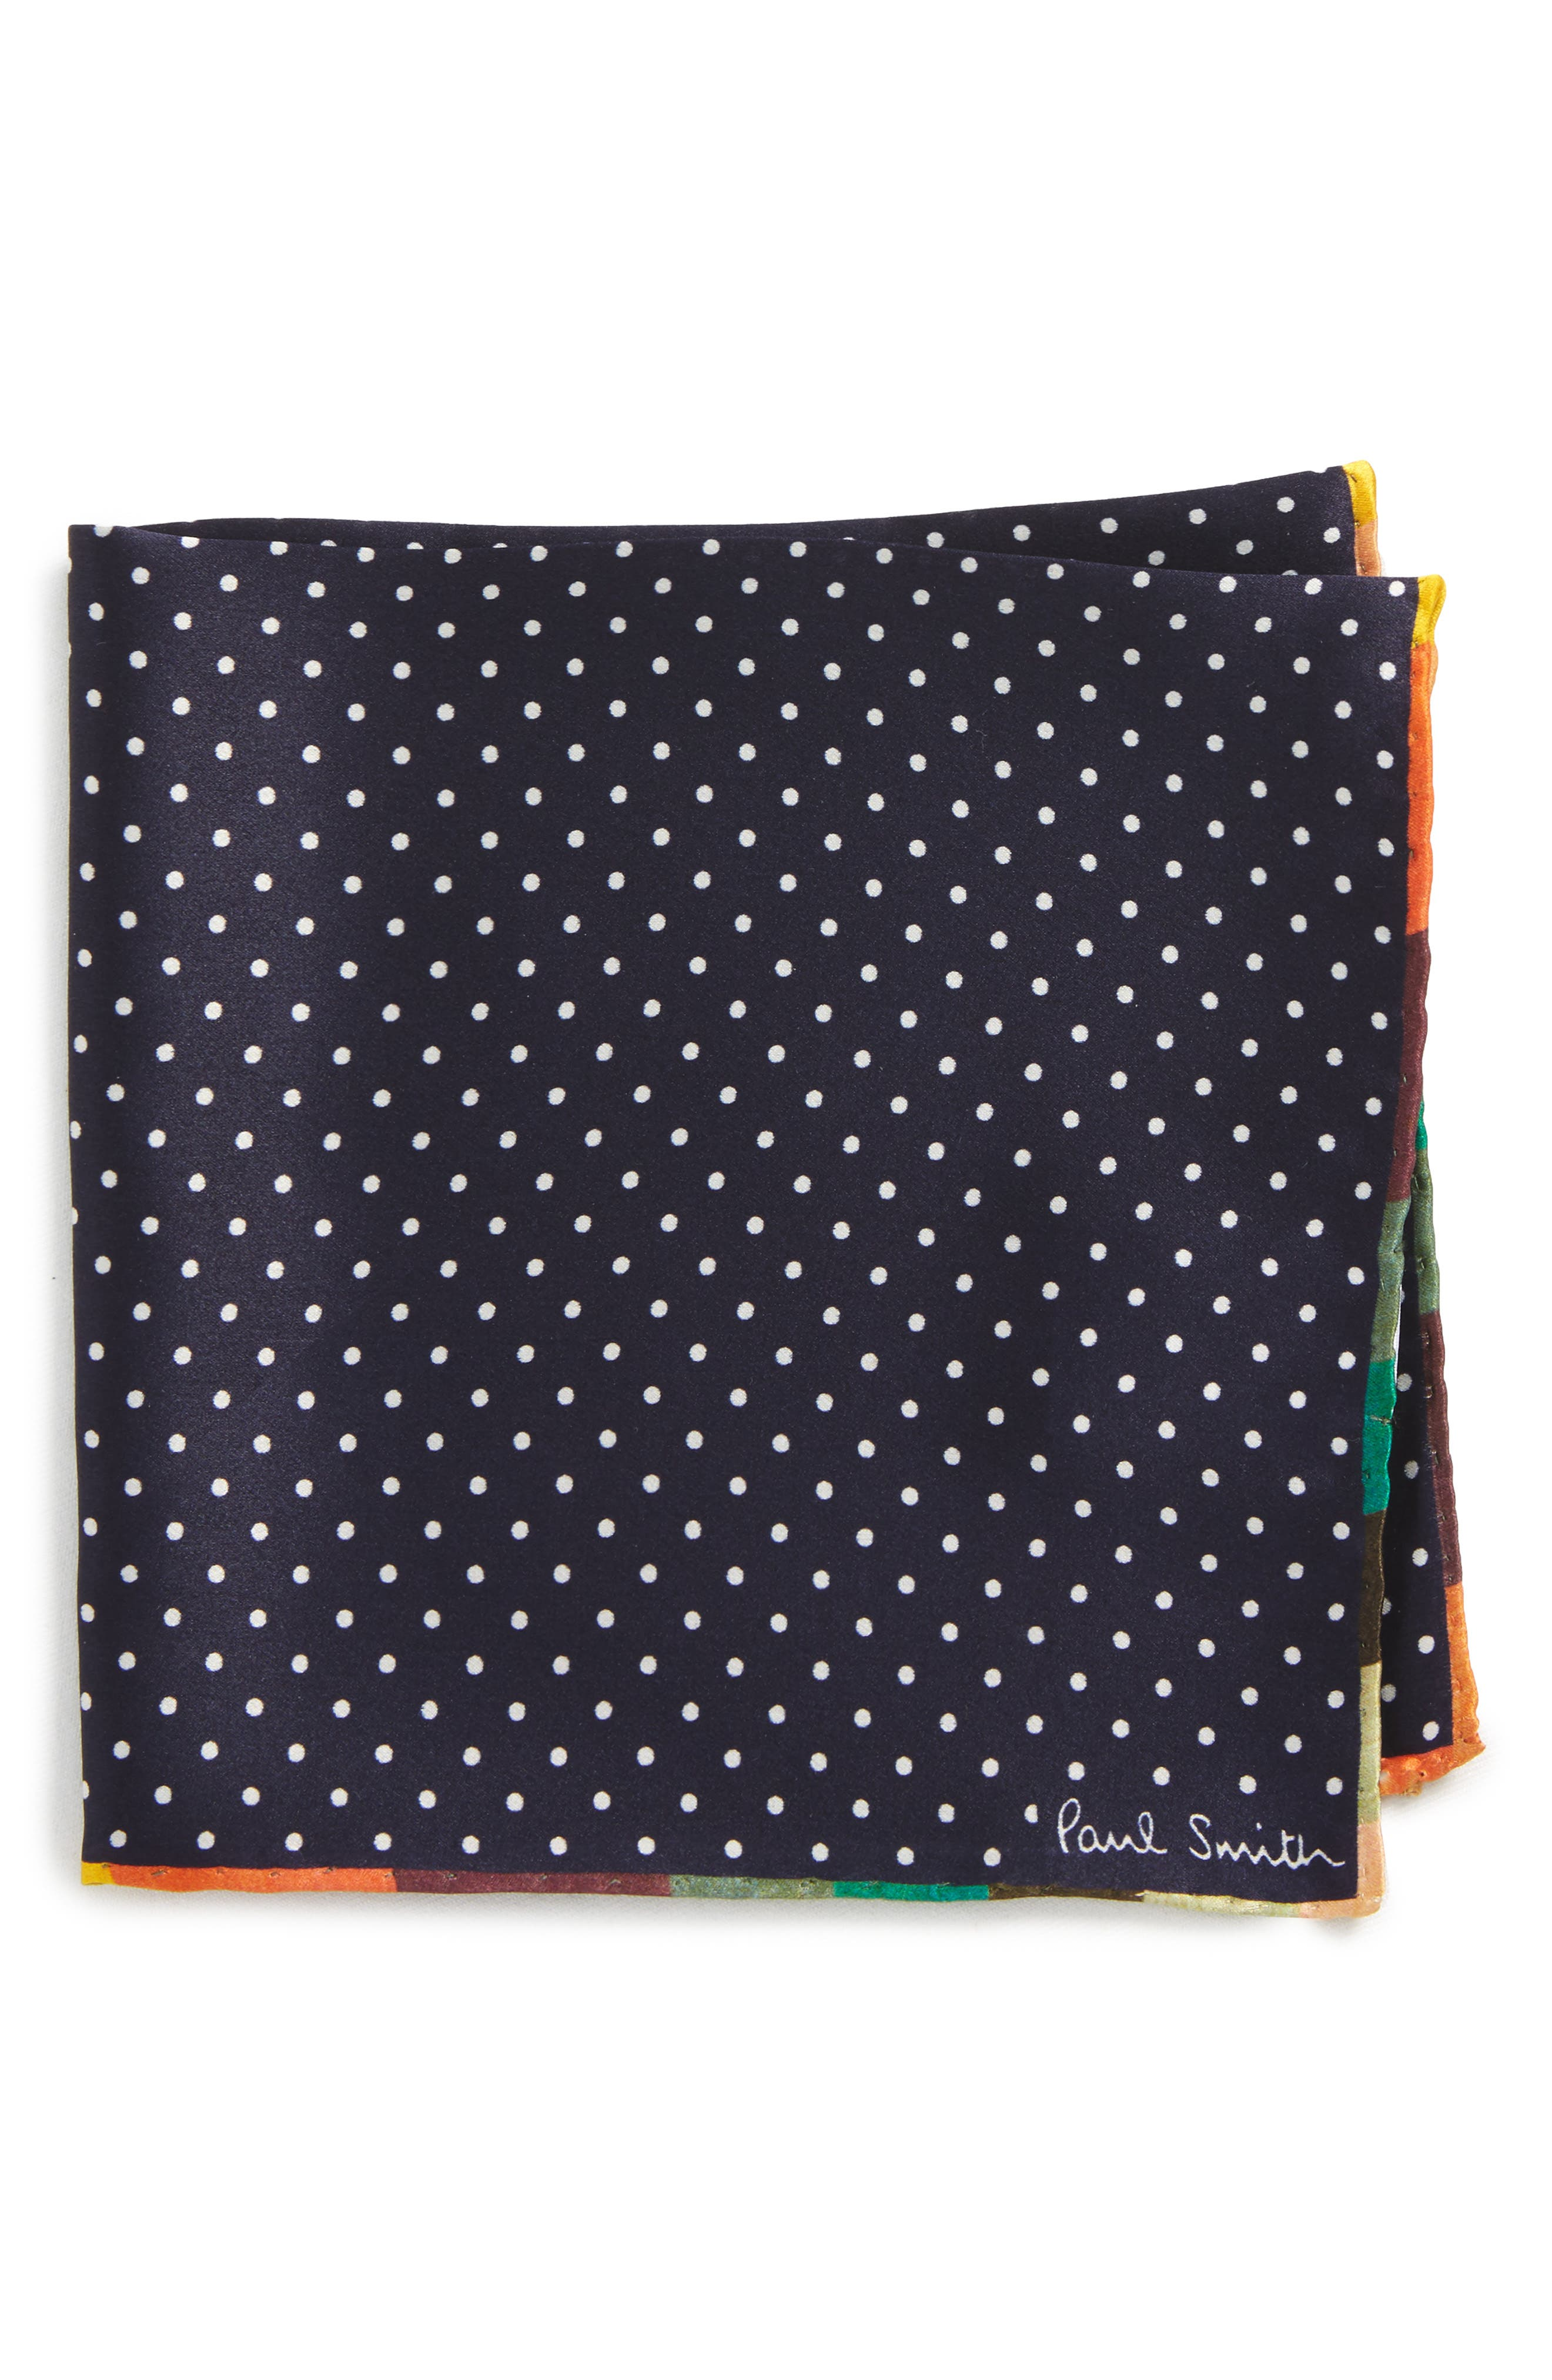 Paul Smith Artist Edge Pin Dot Silk Pocket Square